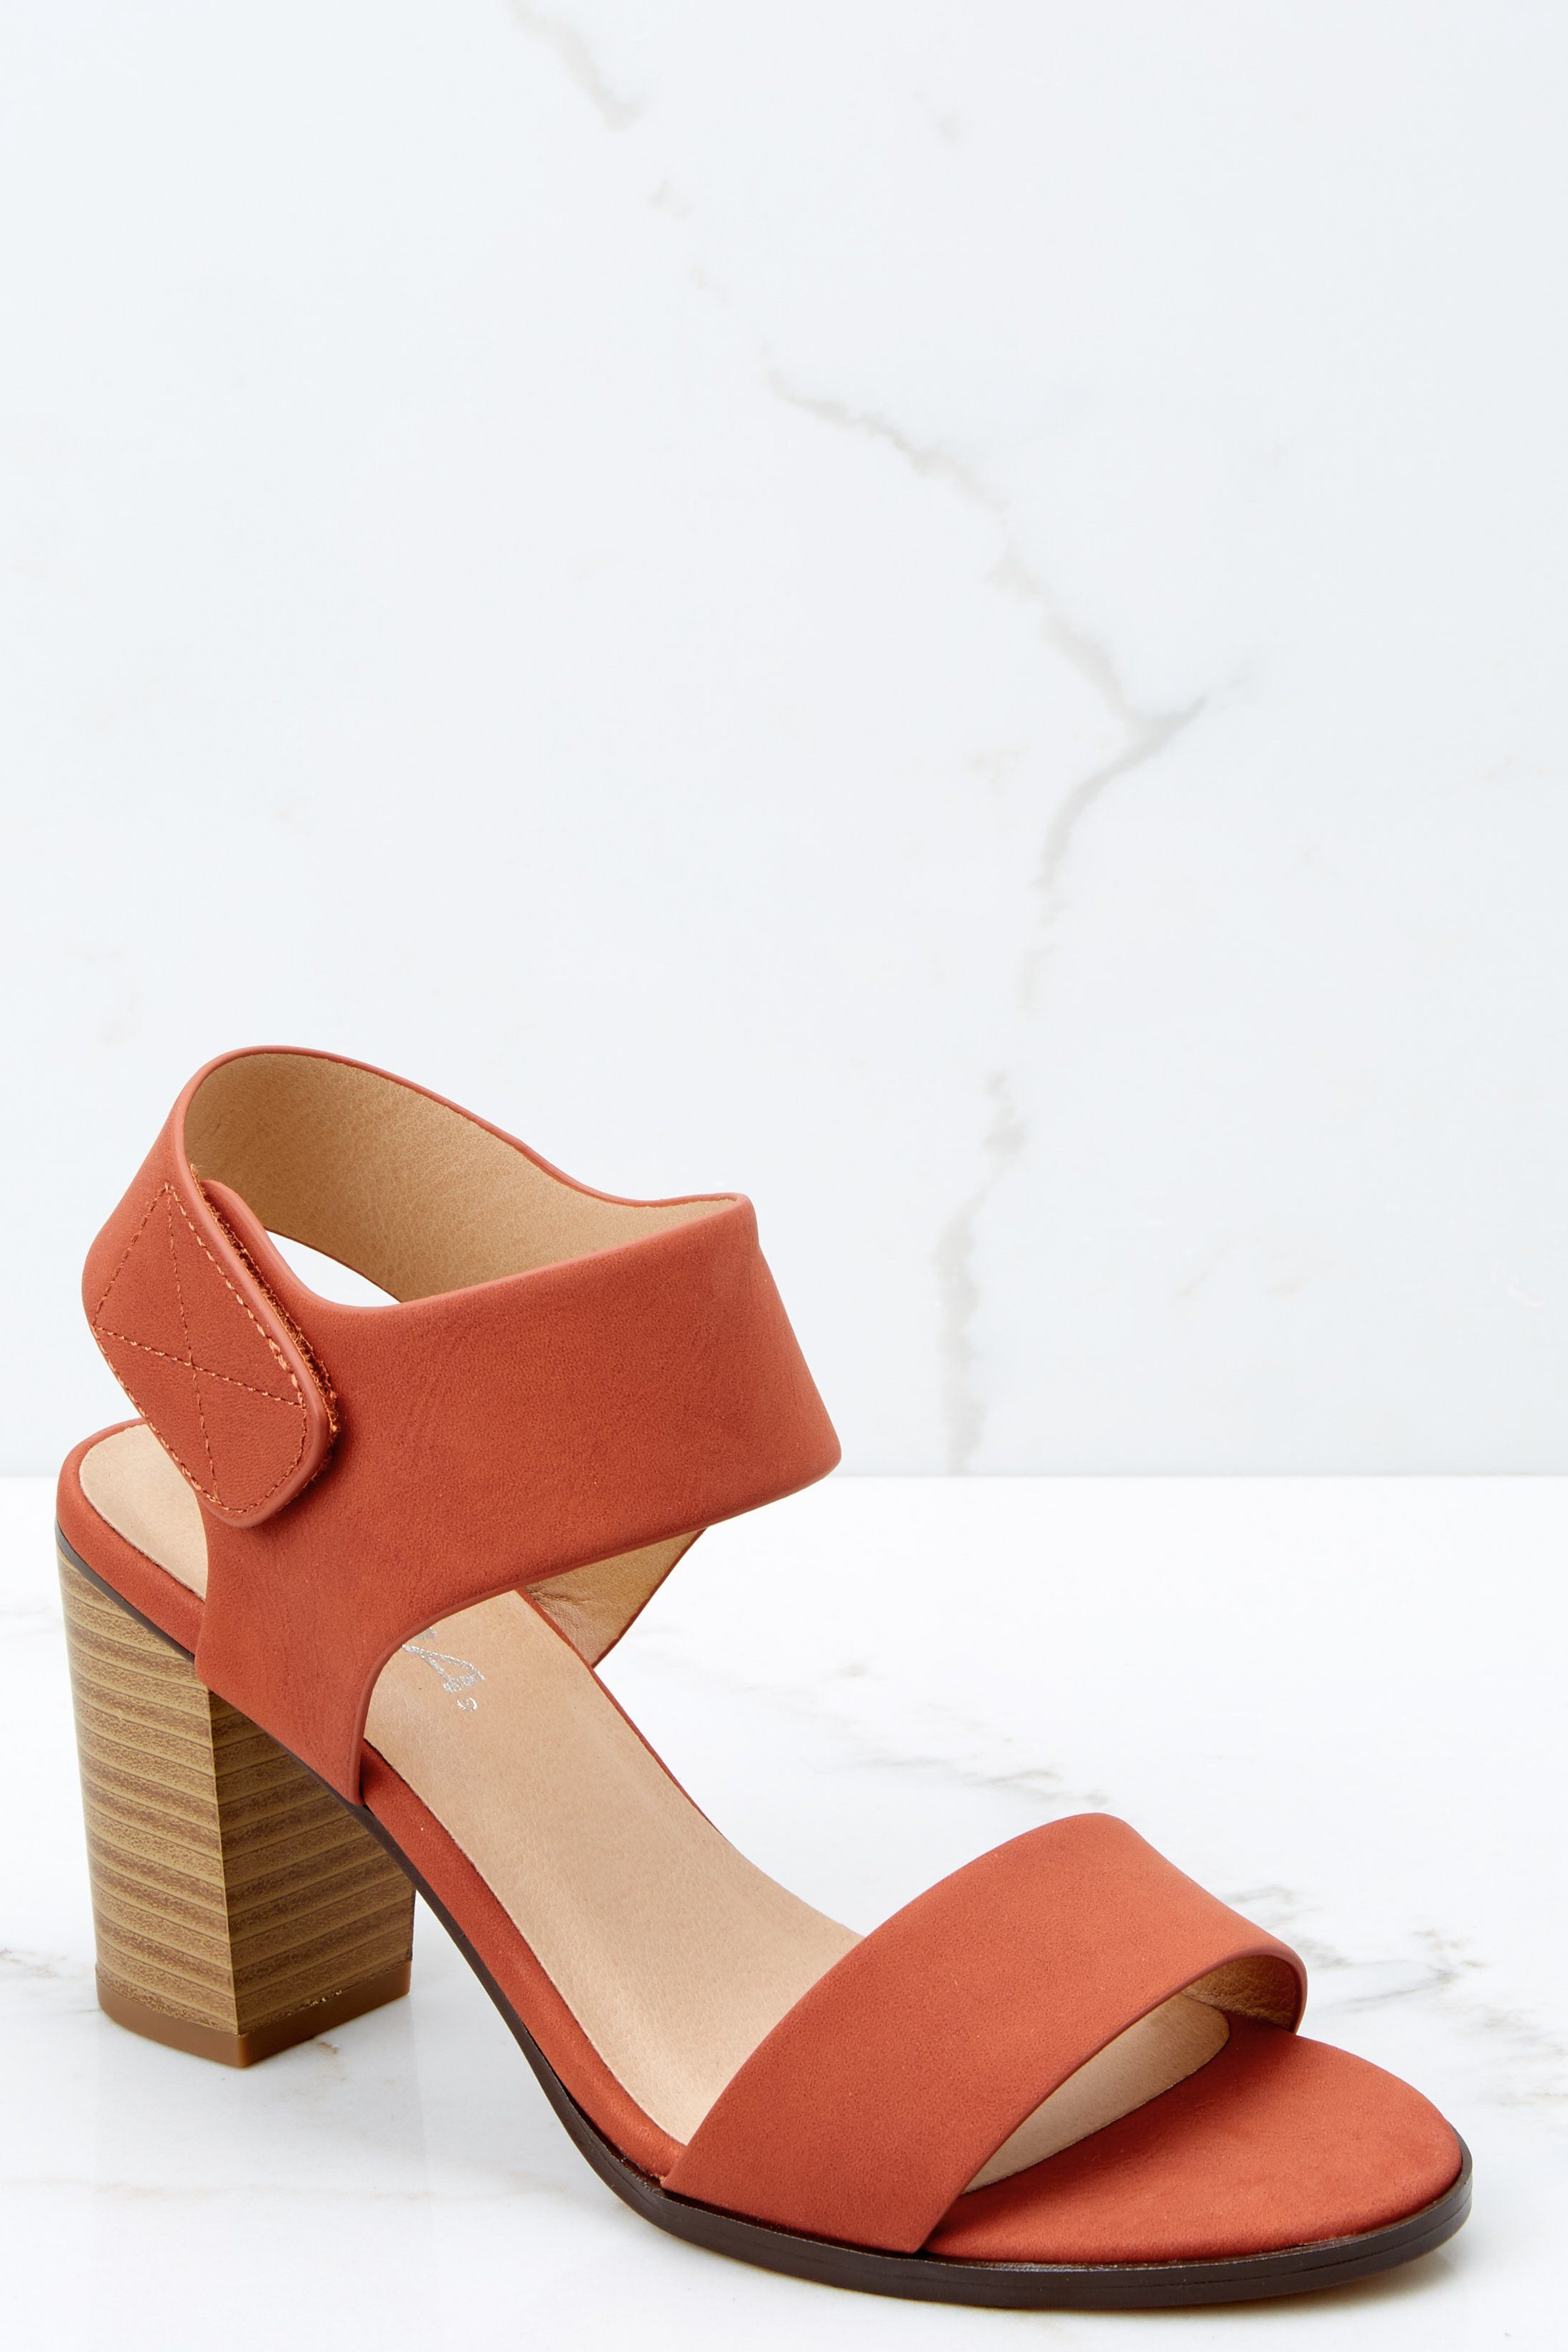 db6761df3040a8 Chic Rust Ankle Strap Heels - Trendy Heels - Heels -  28.00 – Red Dress  Boutique